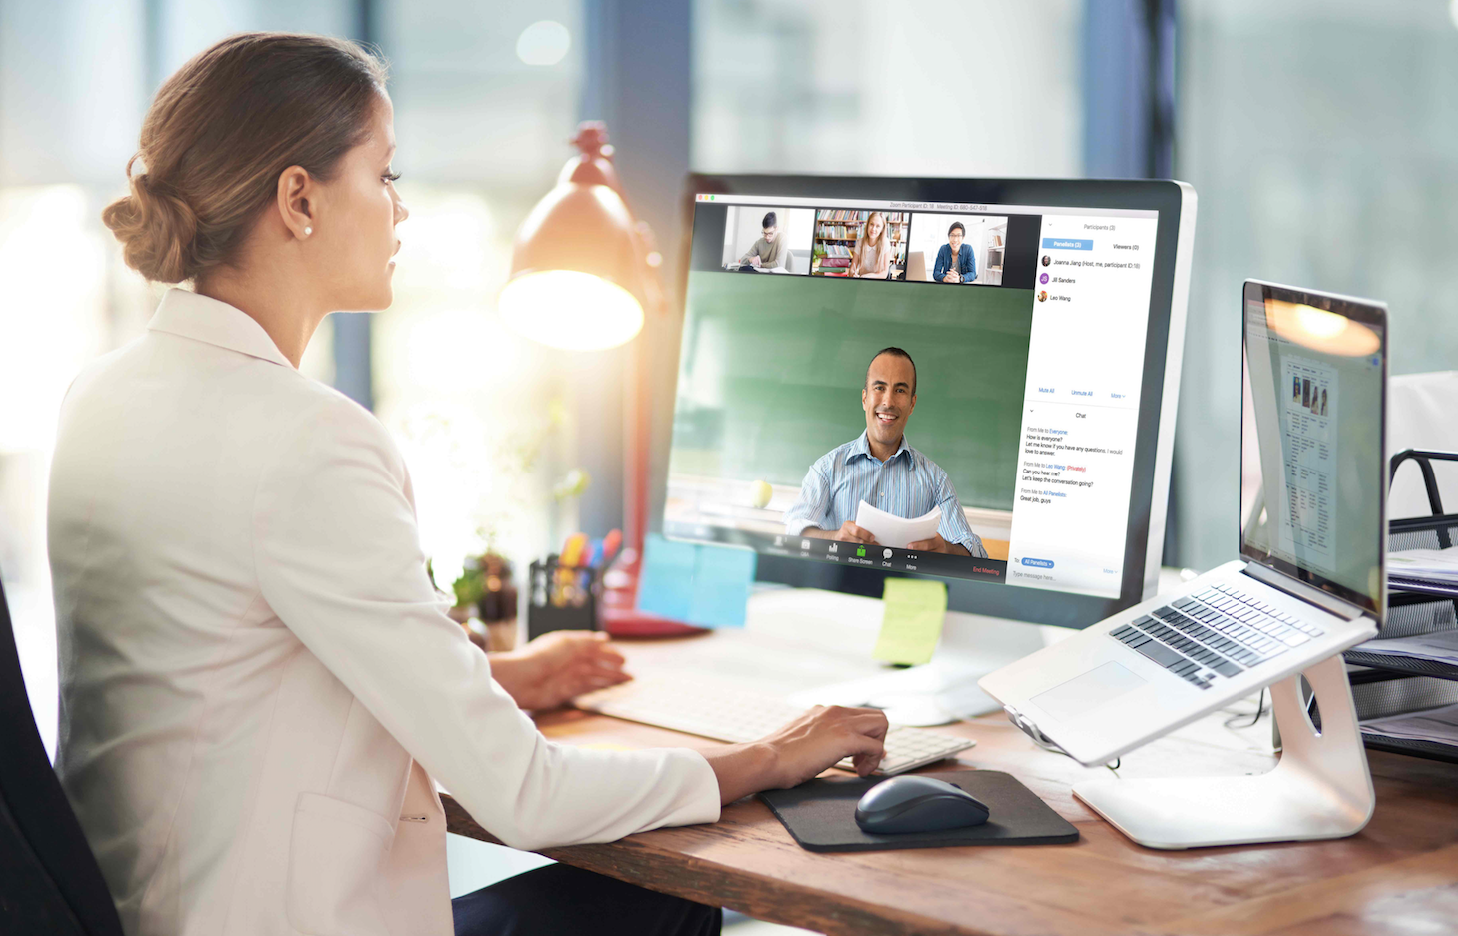 Zoom video webinars - easy to share